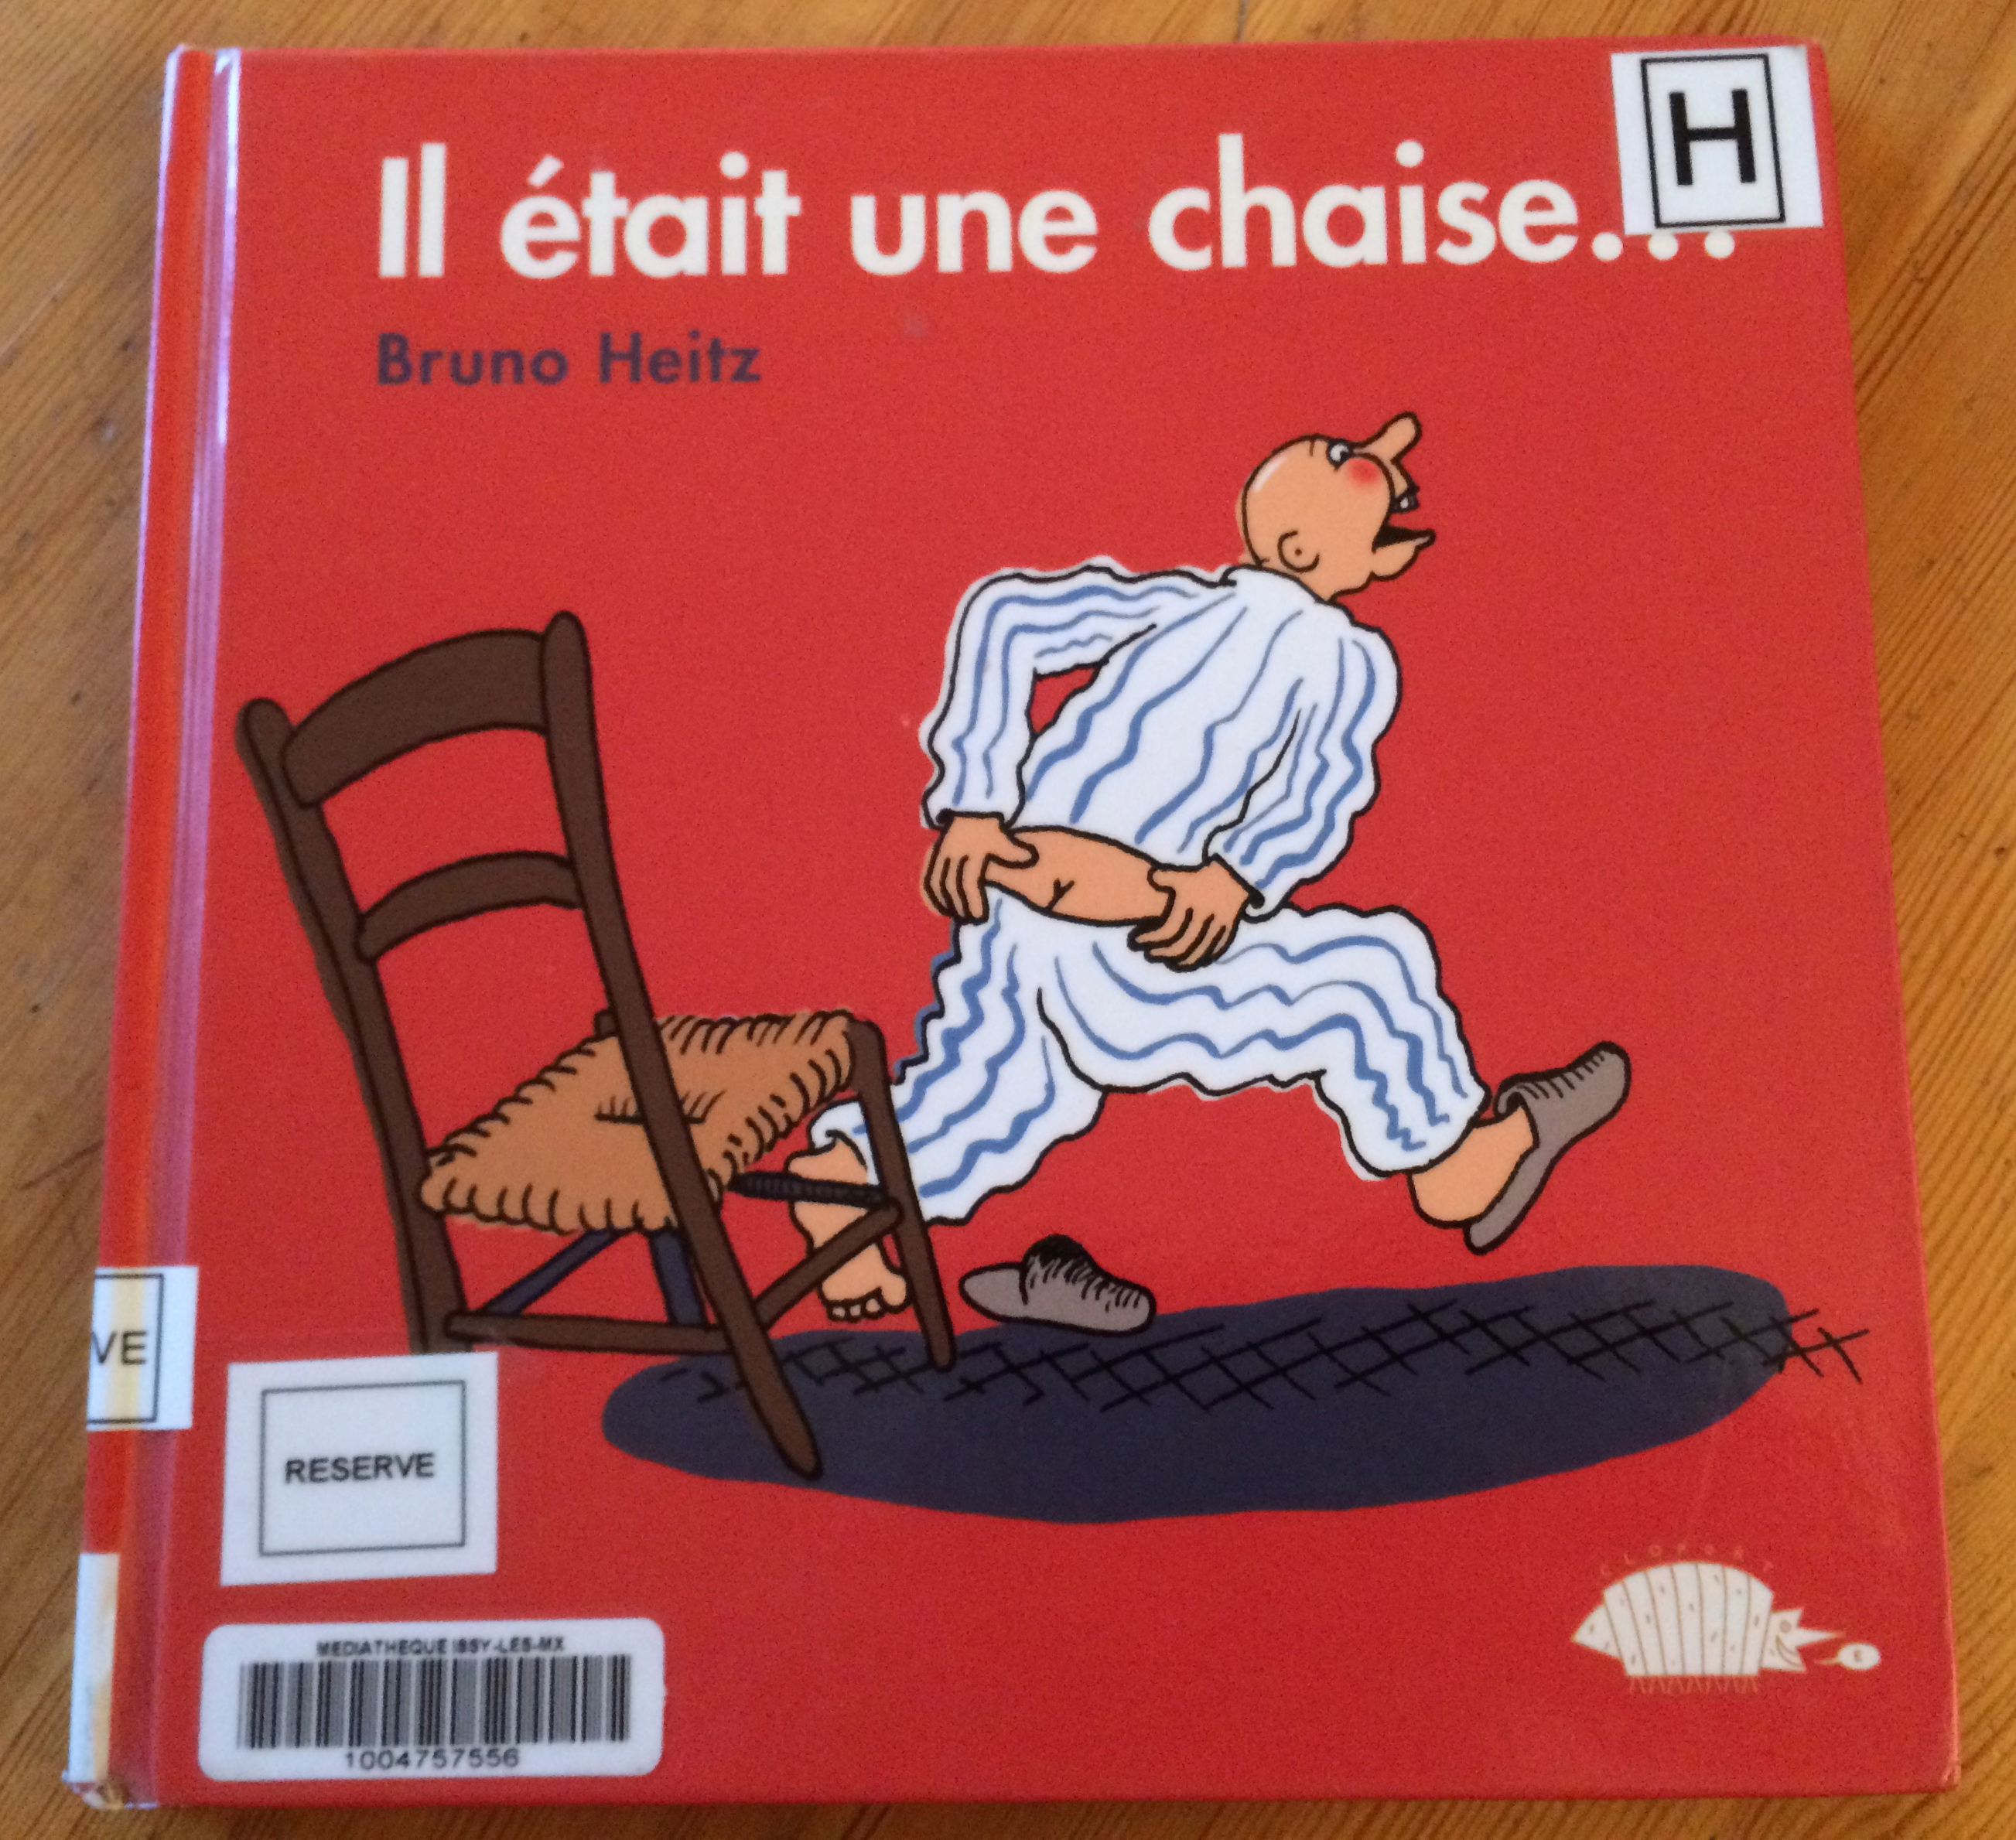 Il était une chaise de Bruno Heitz, Editions Belize, 2007